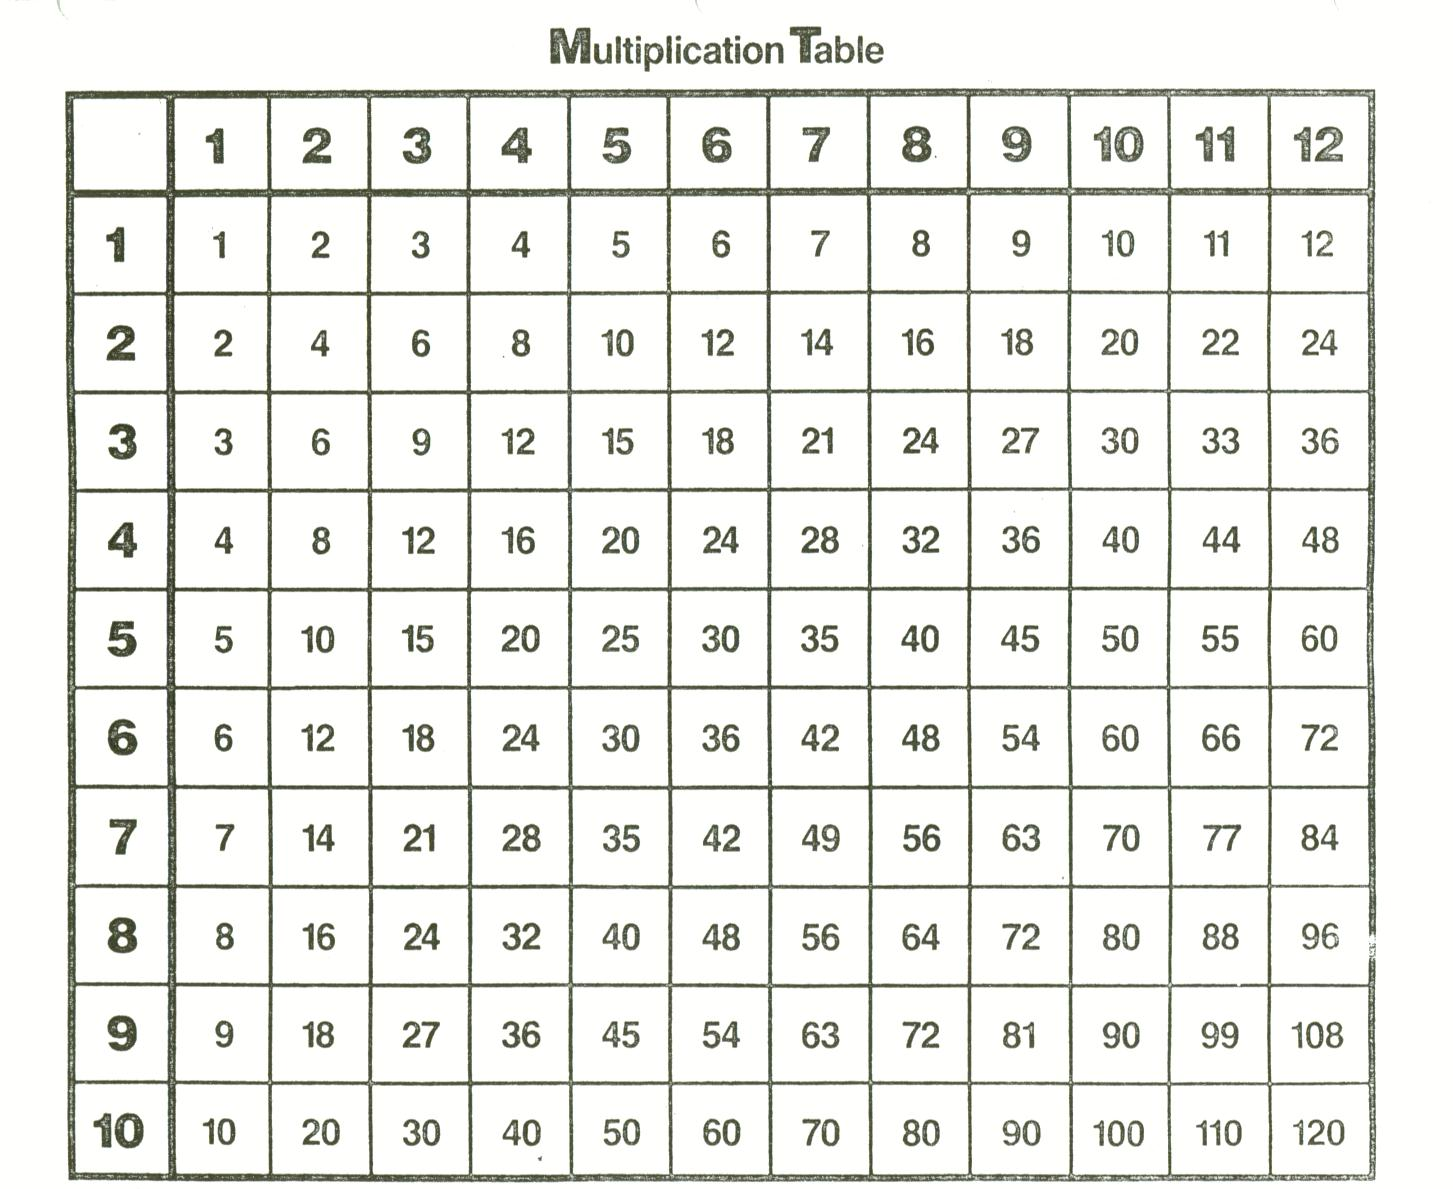 The gallery for multiplication table 100x100 for 1 to 100 multiplication table